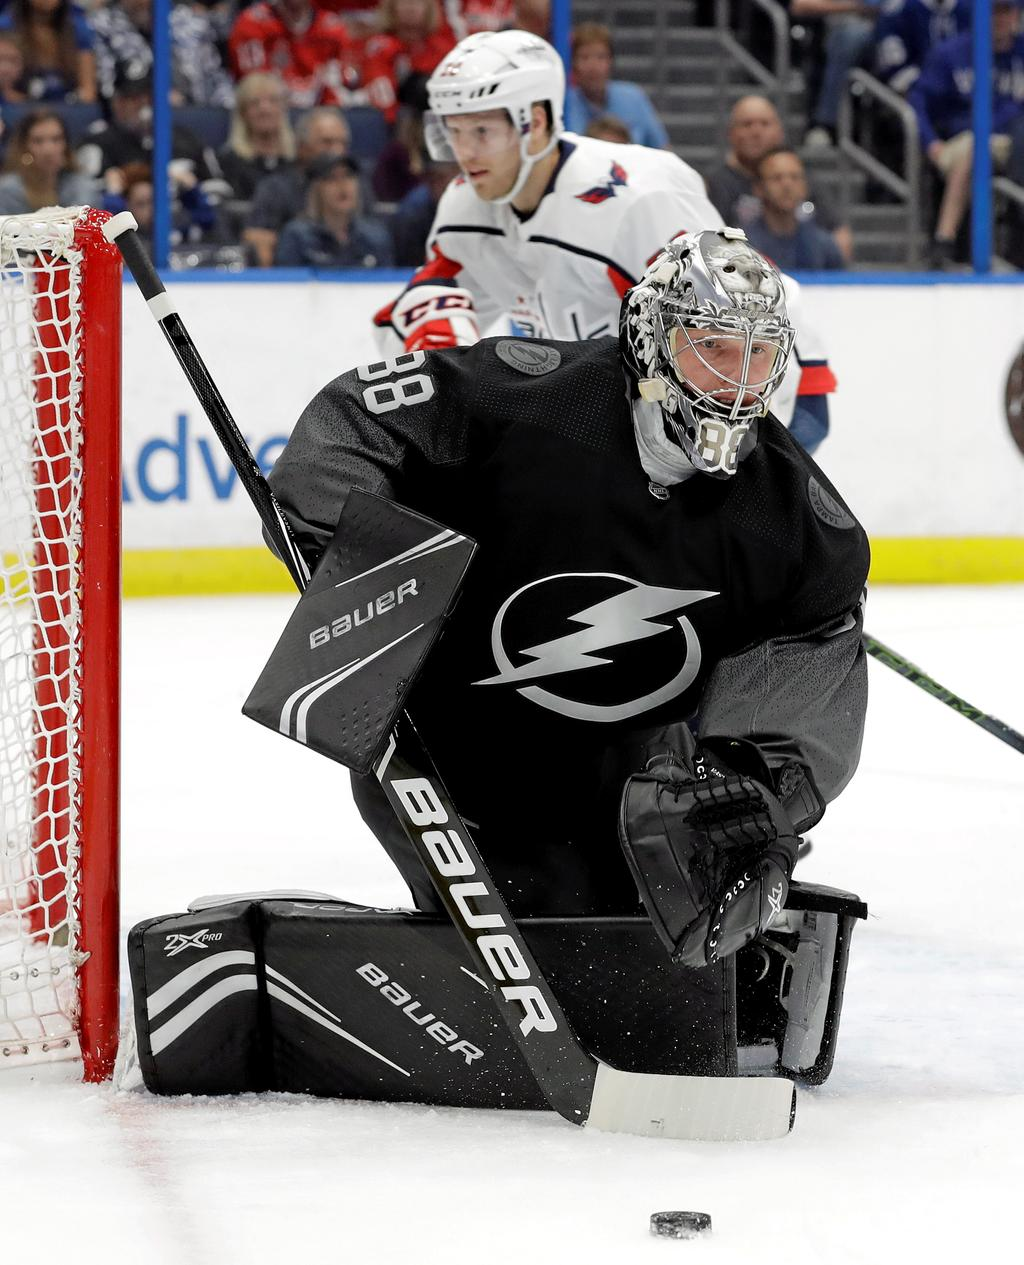 Tampa Bay Lightning goaltender Andrei Vasilevskiy (88) makes a stick save on a shot by the Washington Capitals during the first period of an NHL hockey game Saturday, March 30, 2019, in Tampa, Fla. (AP Photo/Chris O'Meara)